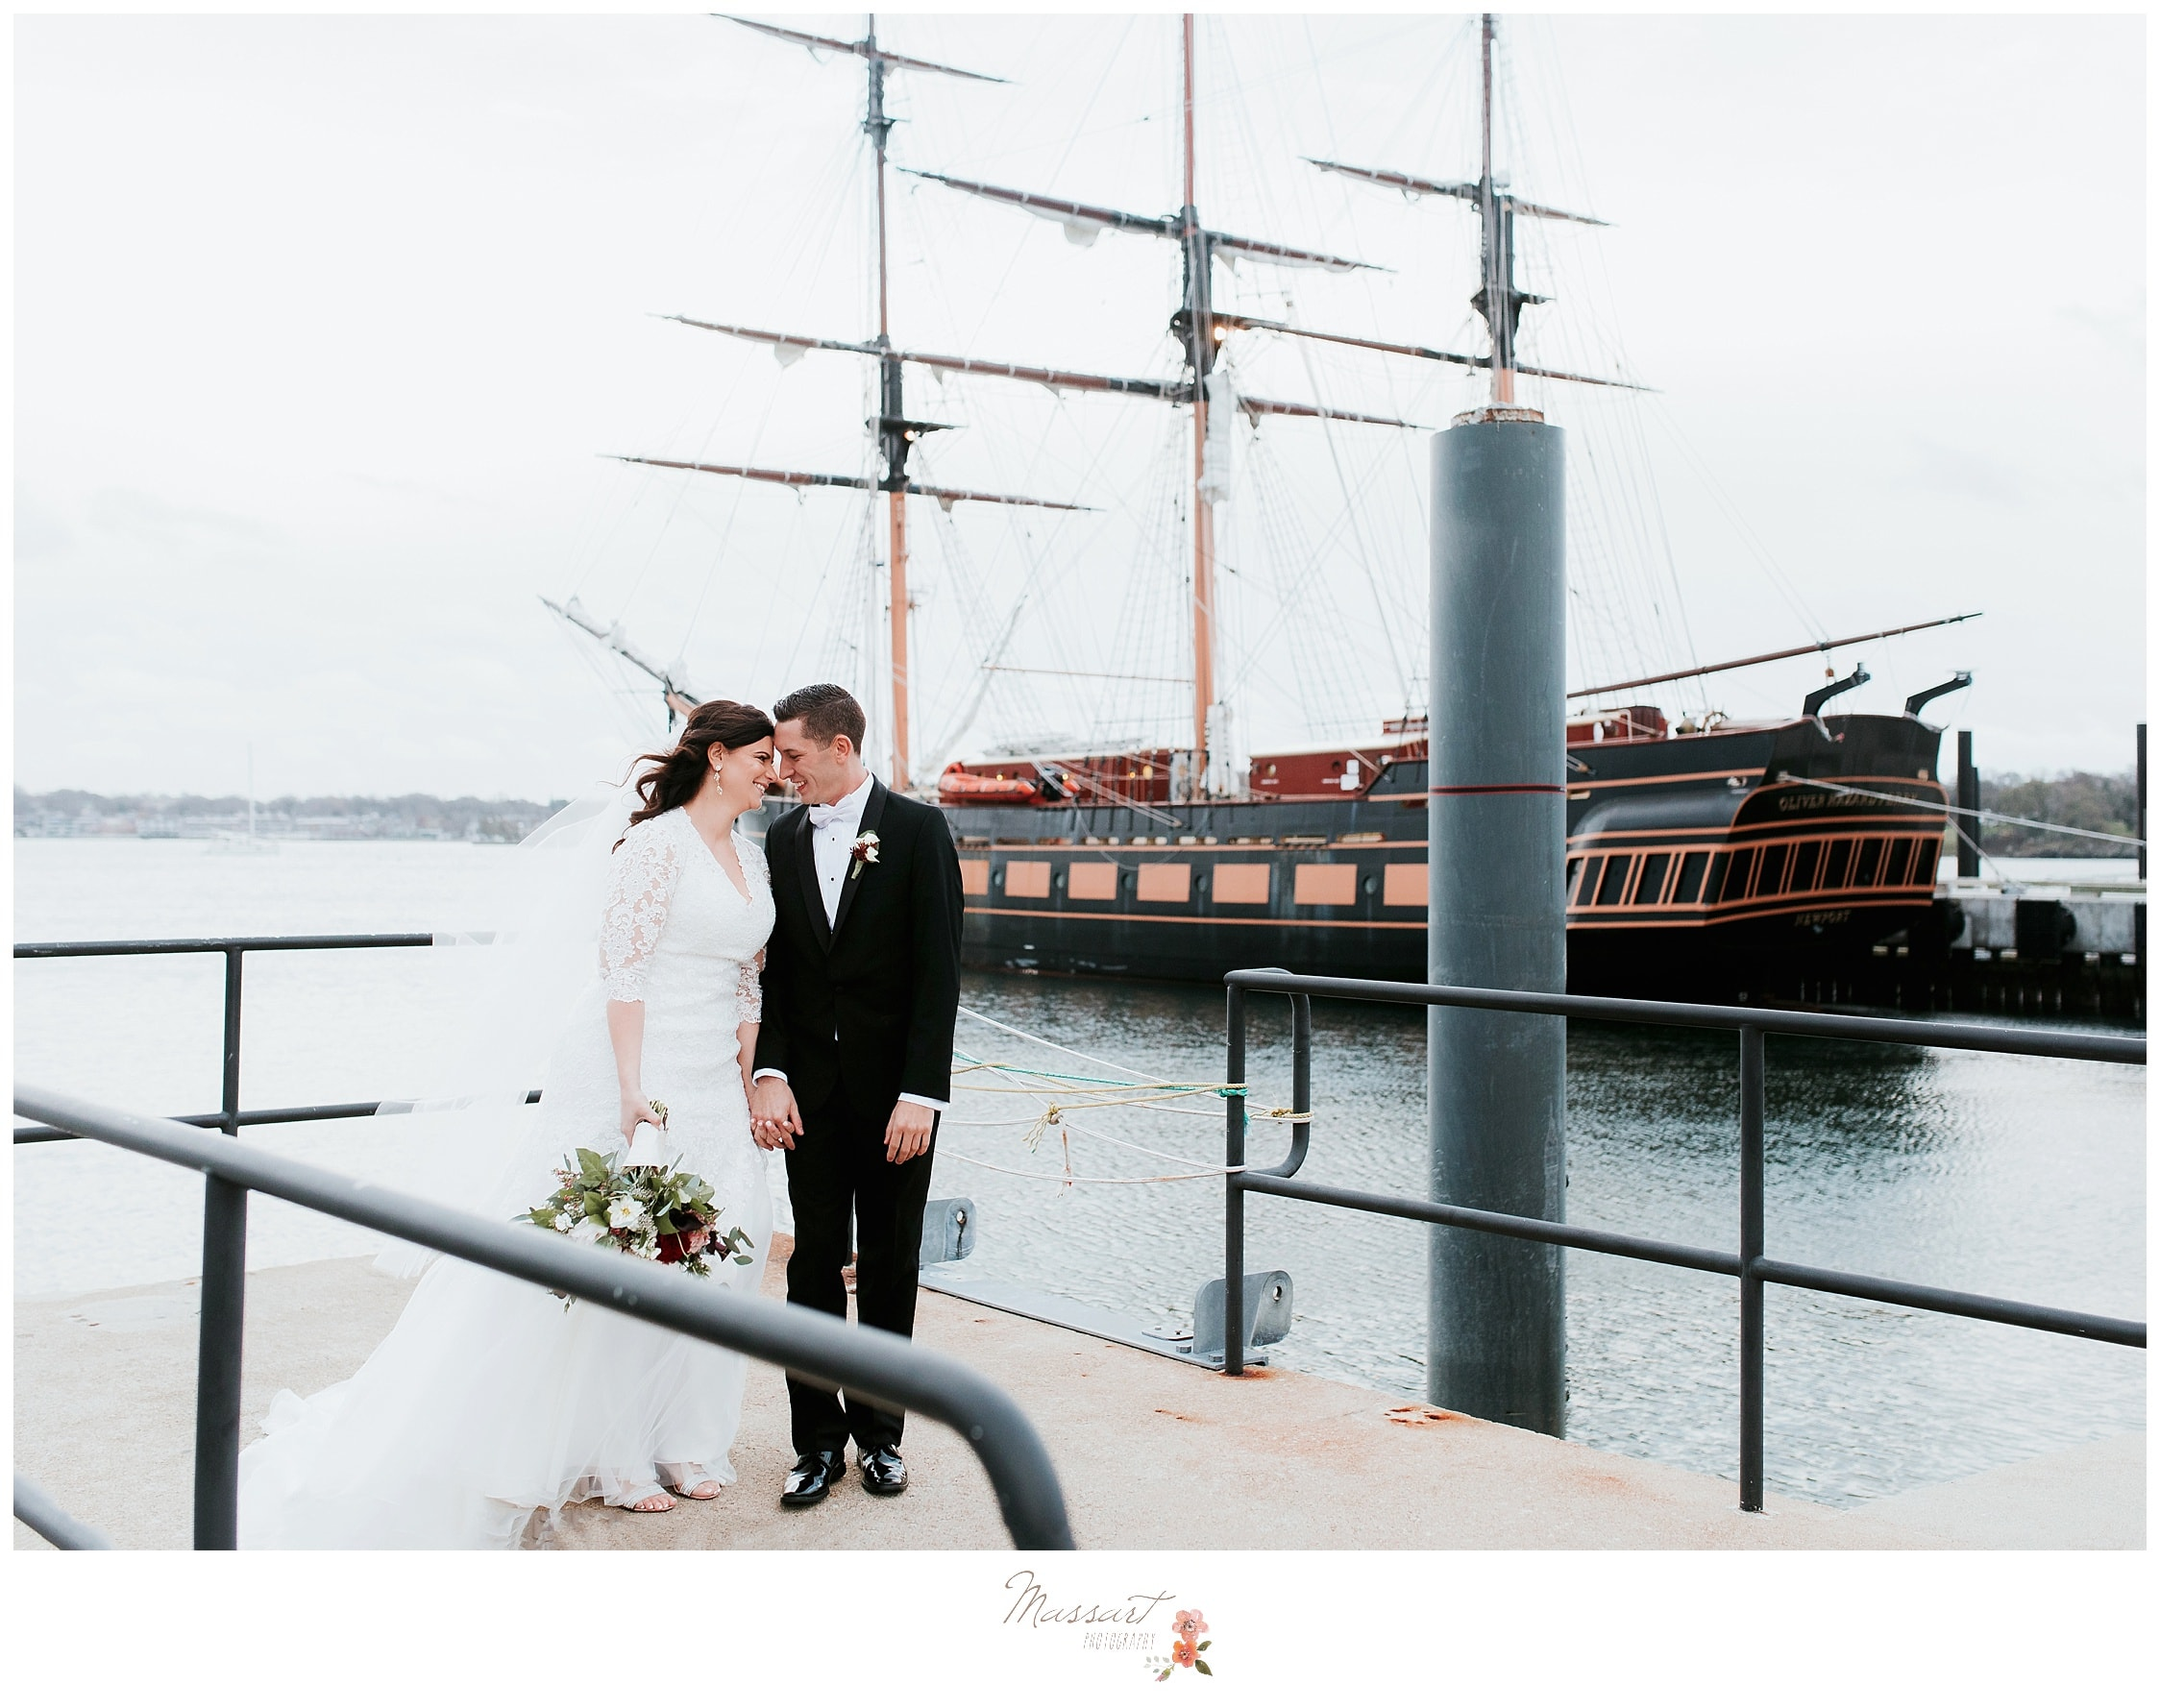 Bride and groom pose in front of a tall ship at Fort Adams Newport, captured by massart photography of RI